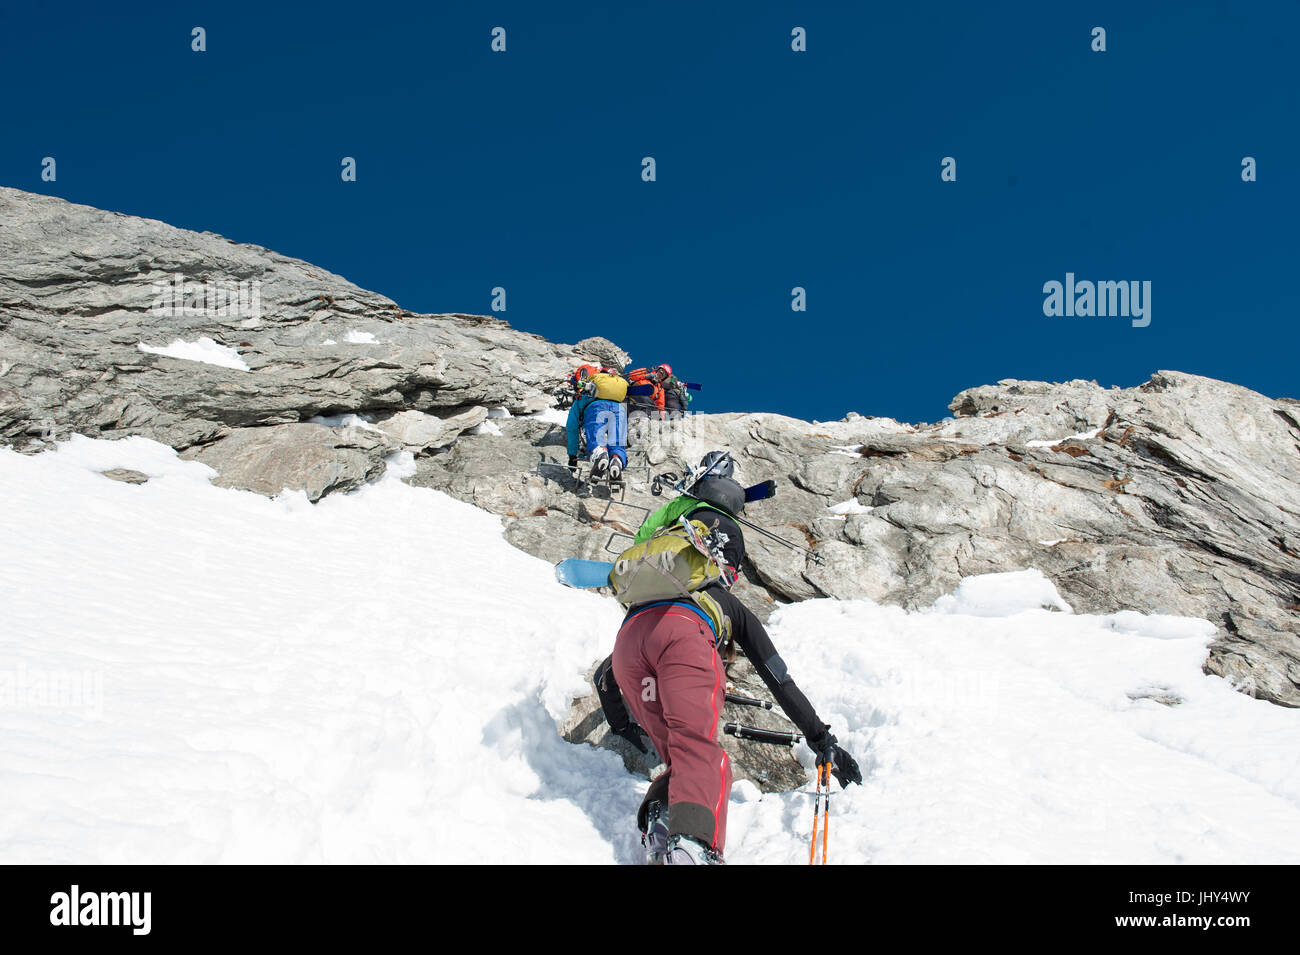 Sherpa from Nepal during a ski training camp in Disentis, Switzerland Stock Photo